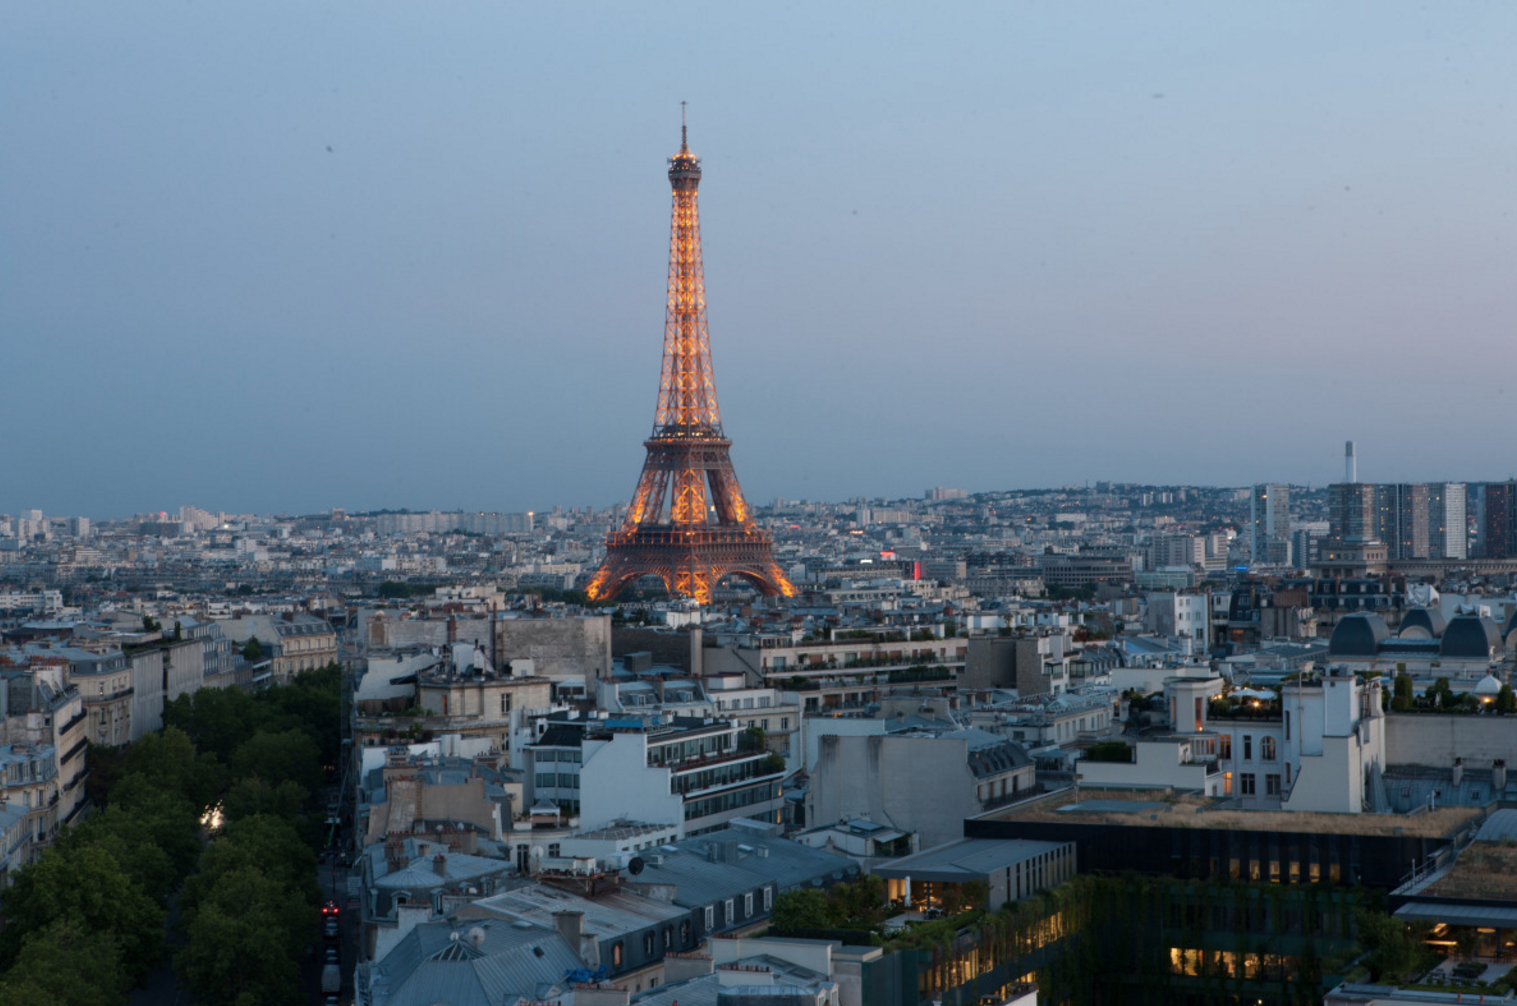 2/Eat at the Eiffel Tower